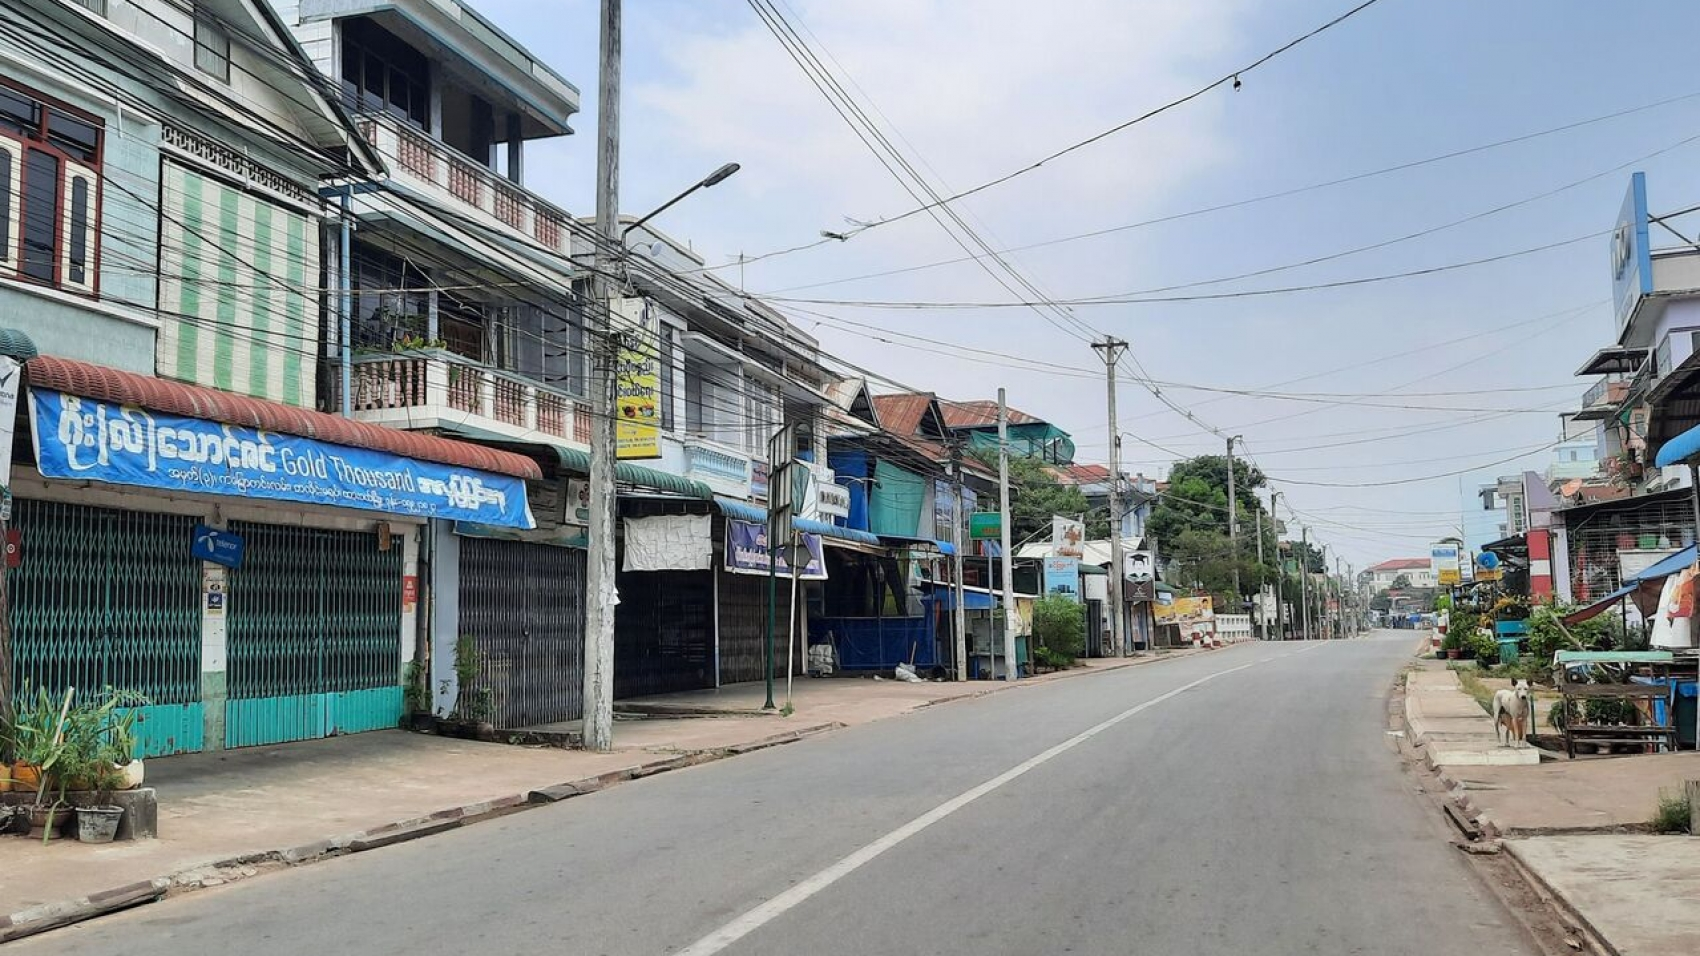 """This handout photo taken and released by Dawei Watch on March 24, 2021 shows an empty street and closed shops in Dawei, as demonstrators called for a """"silent strike"""" in protest against the military coup. (Photo by Handout / DAWEI WATCH / AFP) / RESTRICTED TO EDITORIAL USE - MANDATORY CREDIT """"AFP PHOTO / Dawei Watch """" - NO MARKETING - NO ADVERTISING CAMPAIGNS - DISTRIBUTED AS A SERVICE TO CLIENTS"""